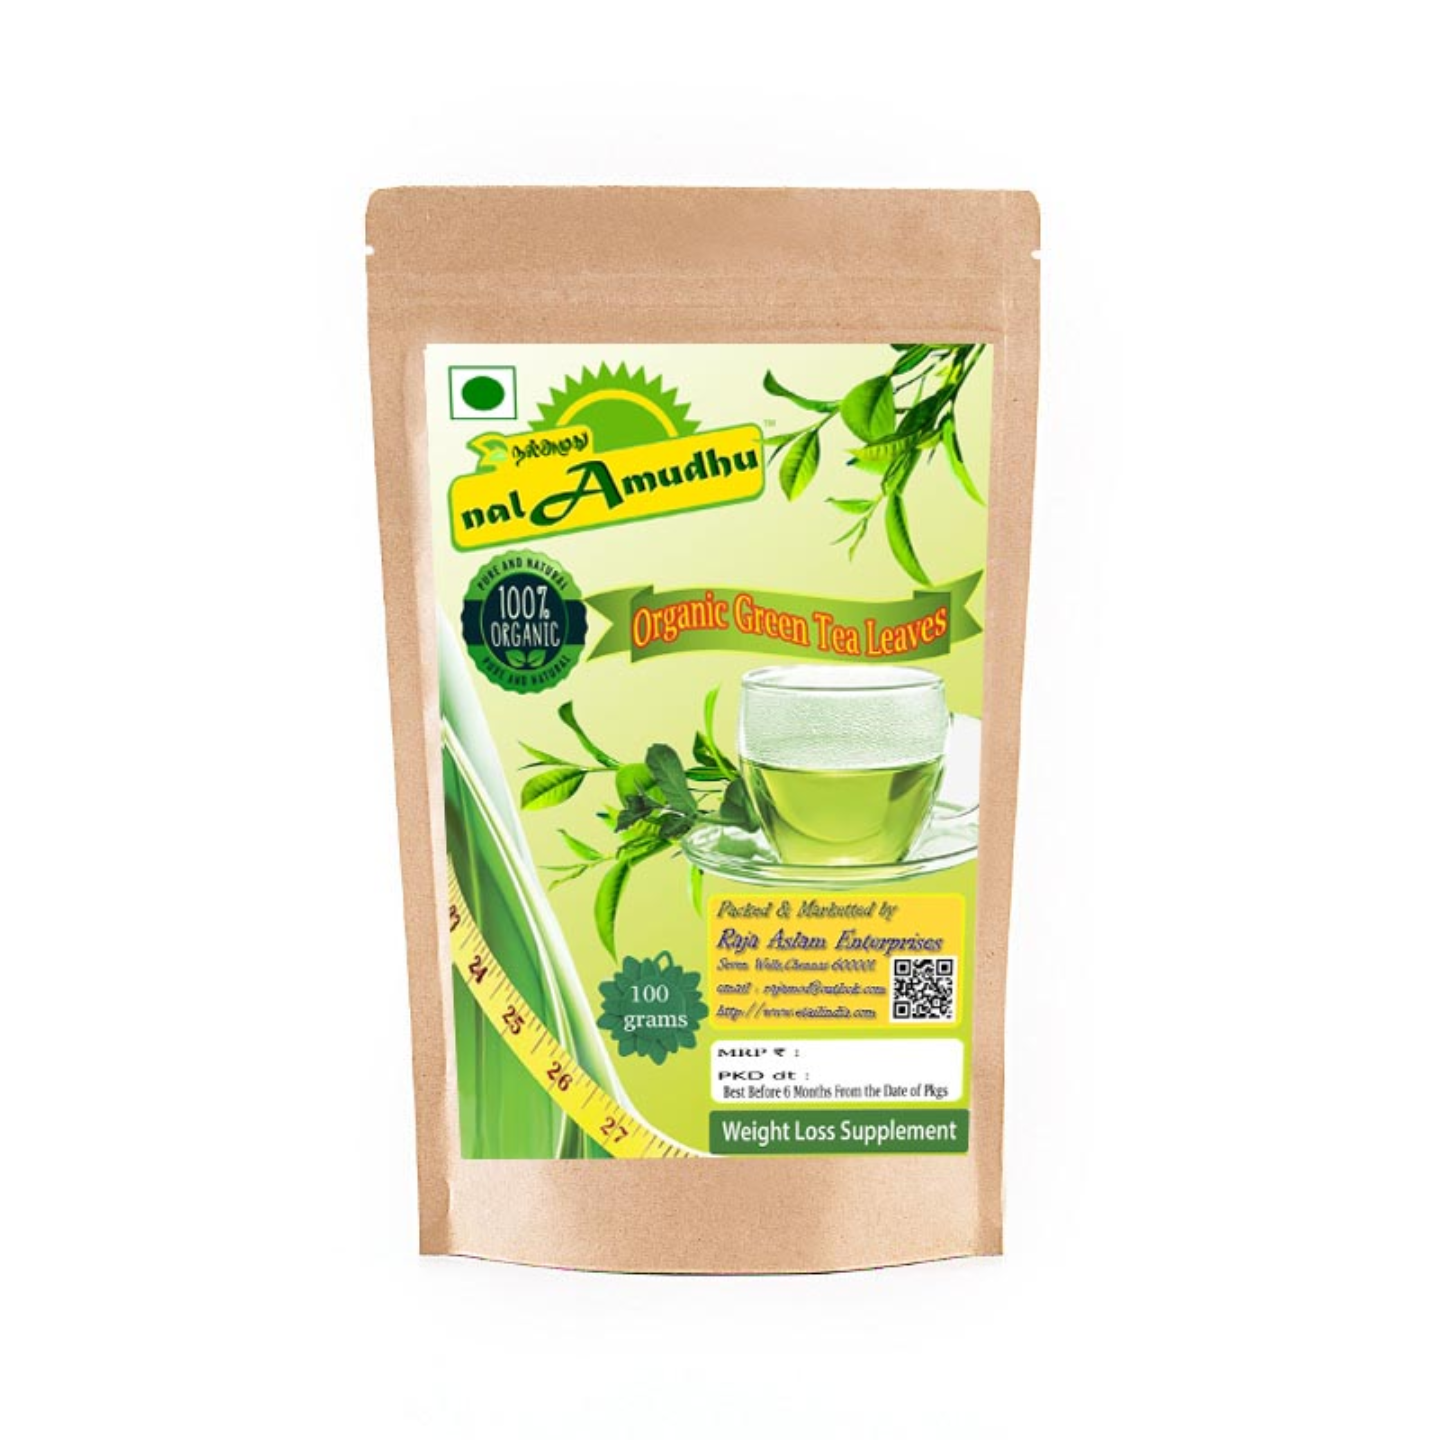 nalAmudhu Organic Nilgiri Green Tea Leaves